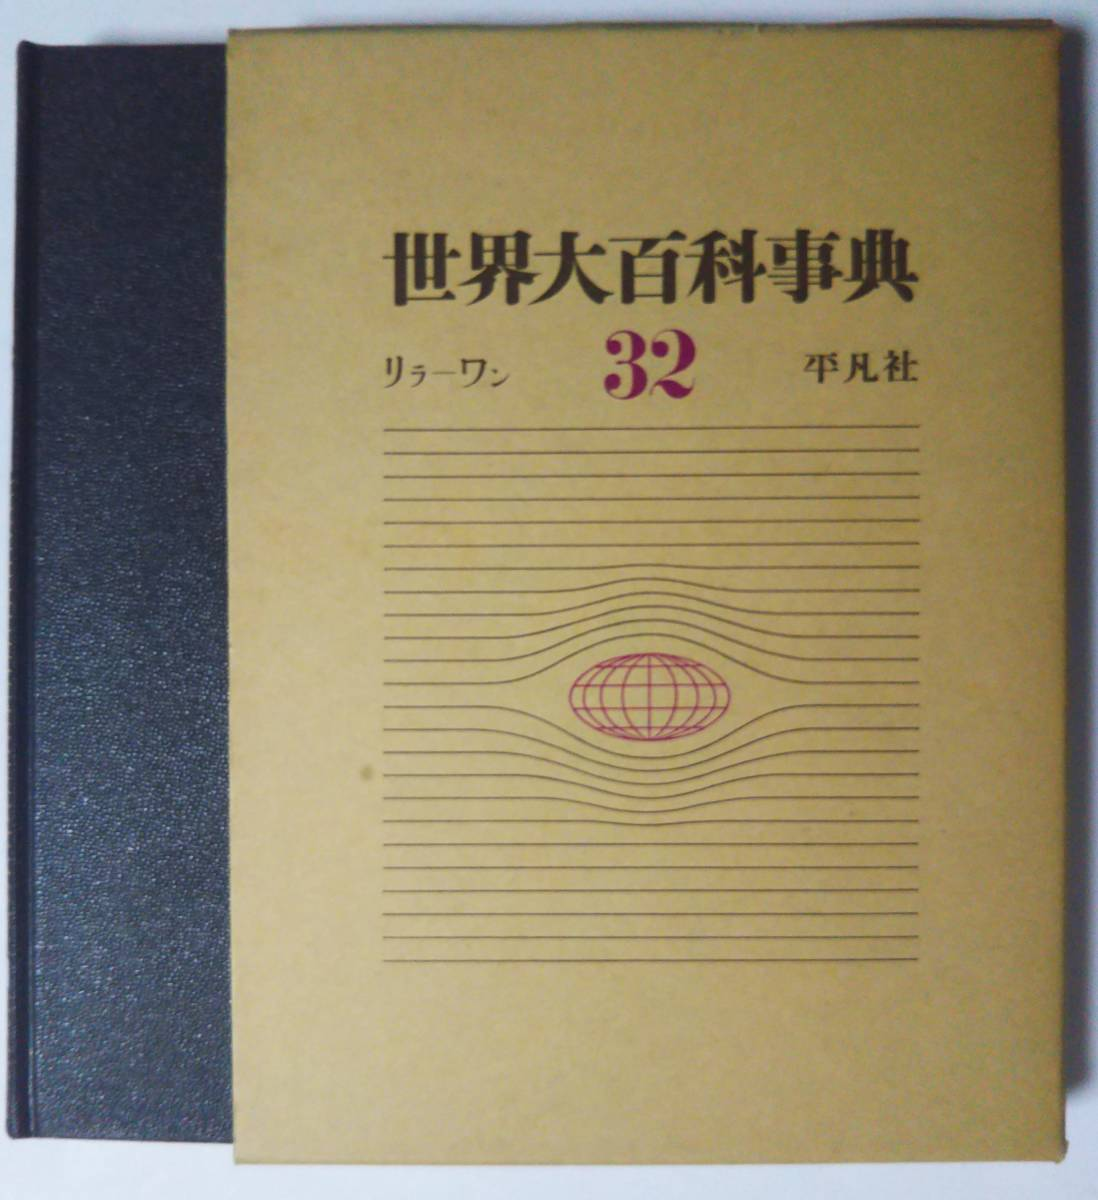 Heibonsha World Encyclopedia 32 (round-one) 1972 first edition issued box there/Beauty Products size: 22.5×31㎝ approx 2kg